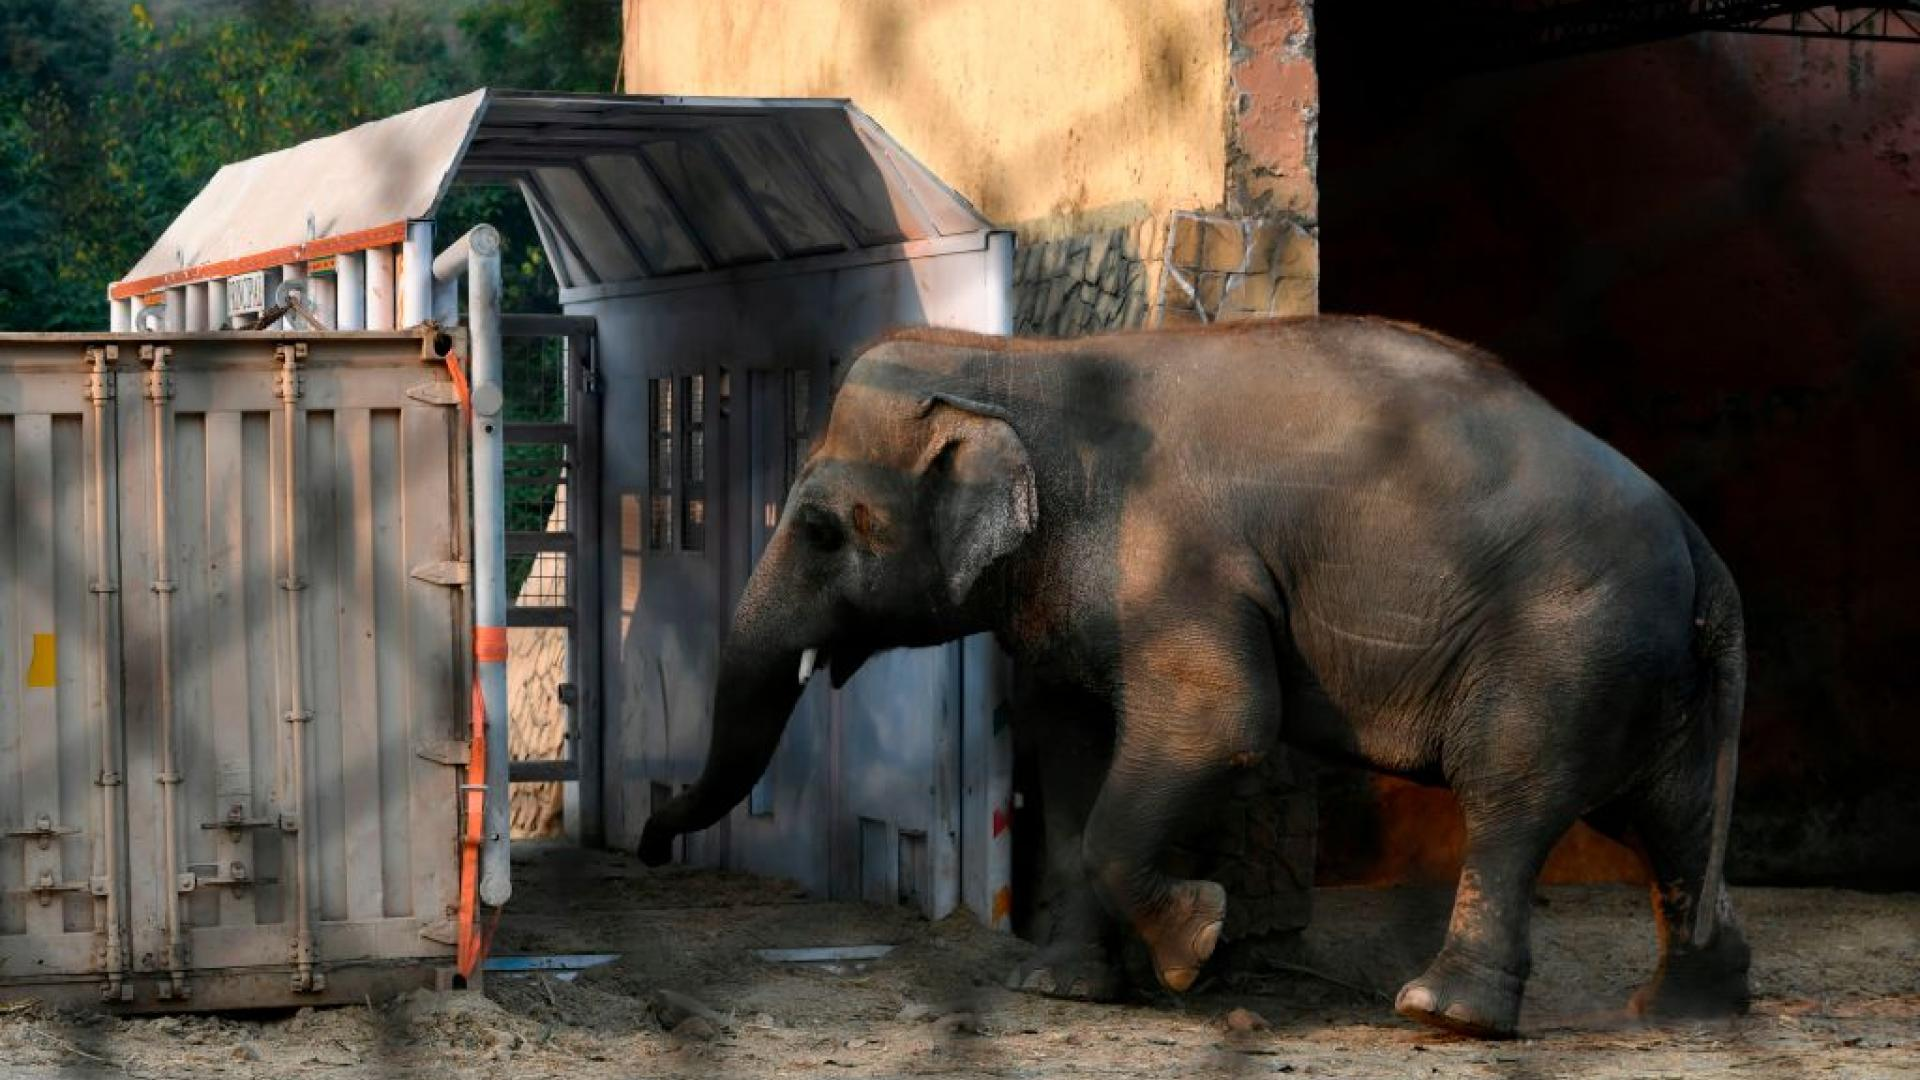 The World's loneliest elephant is headed for a new home.